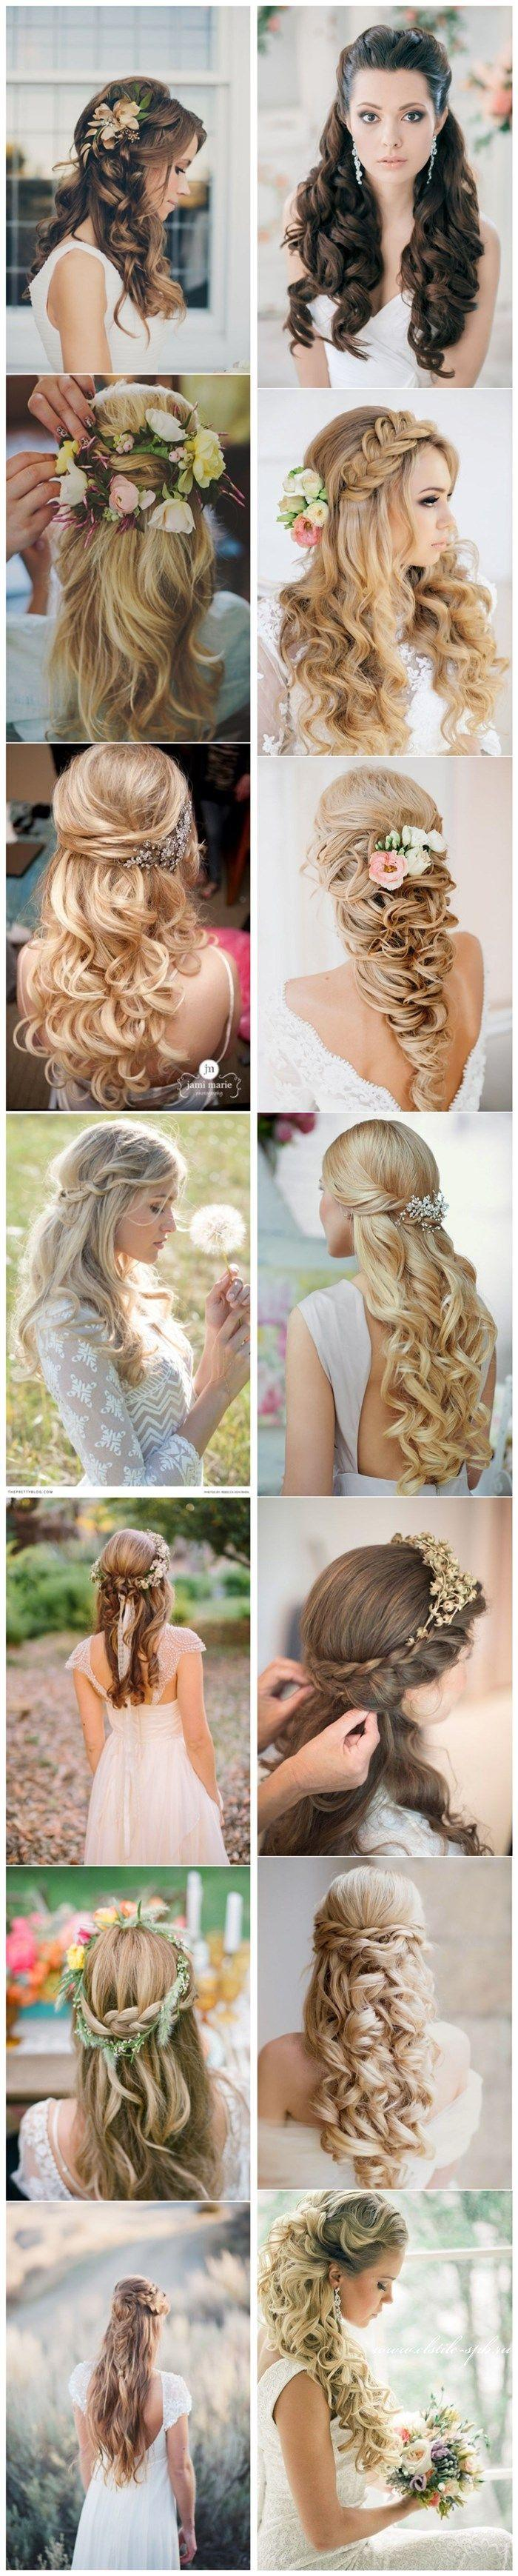 Mariage - 40 Stunning Half Up Half Down Wedding Hairstyles With Tutorial